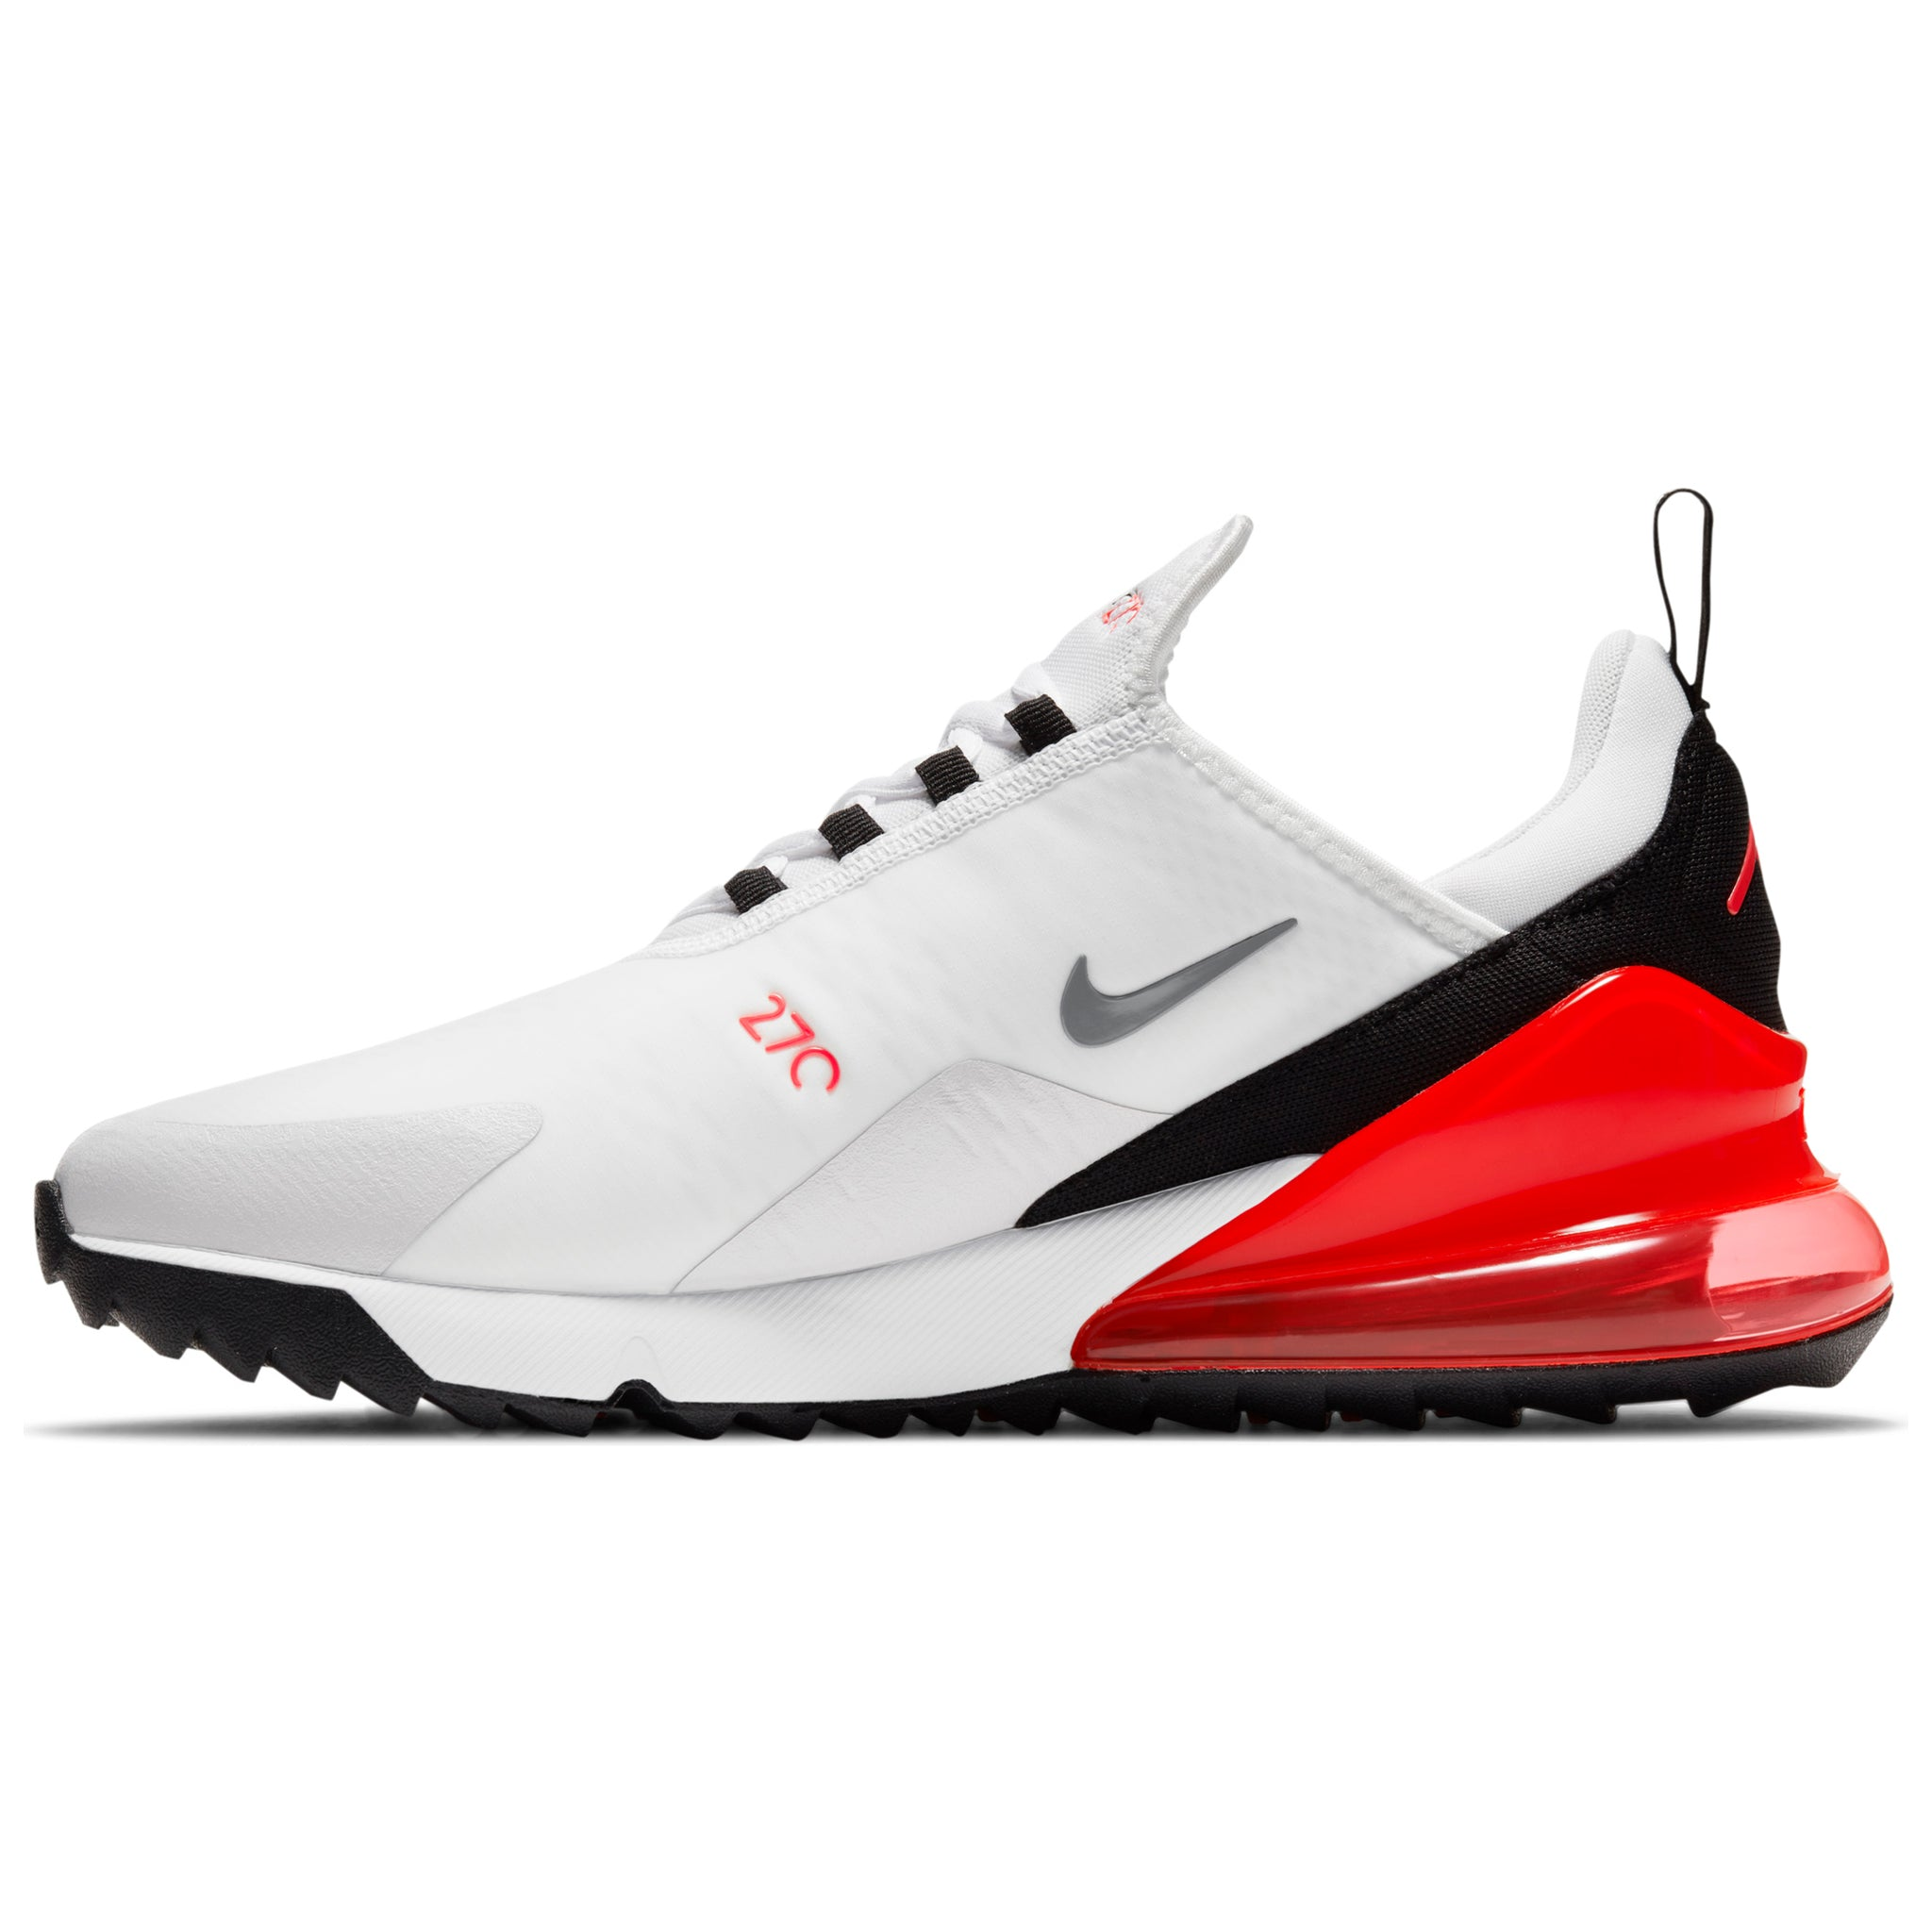 Nike Golf Air Max 270 G Shoes CK6483